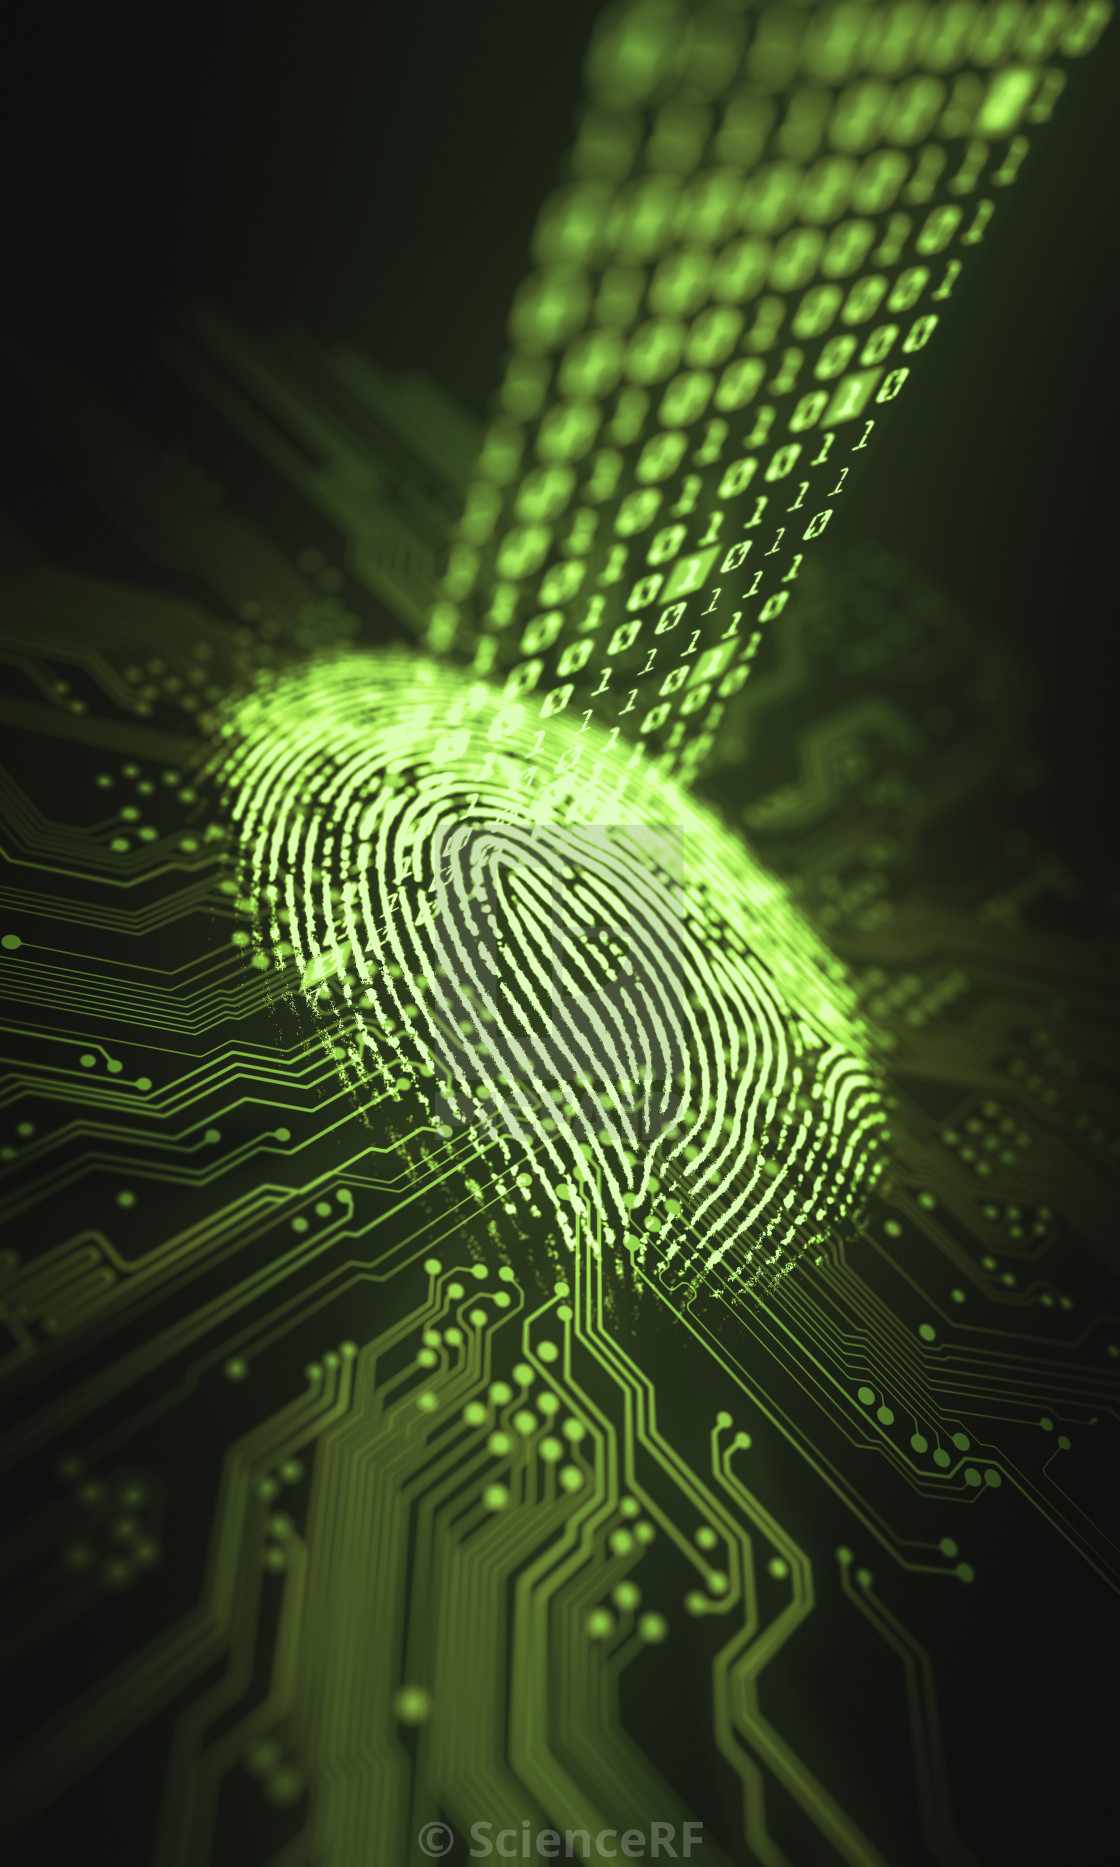 Printed Circuit Board Images Picfair Search Results Illustration Fingerprint And Stock Image